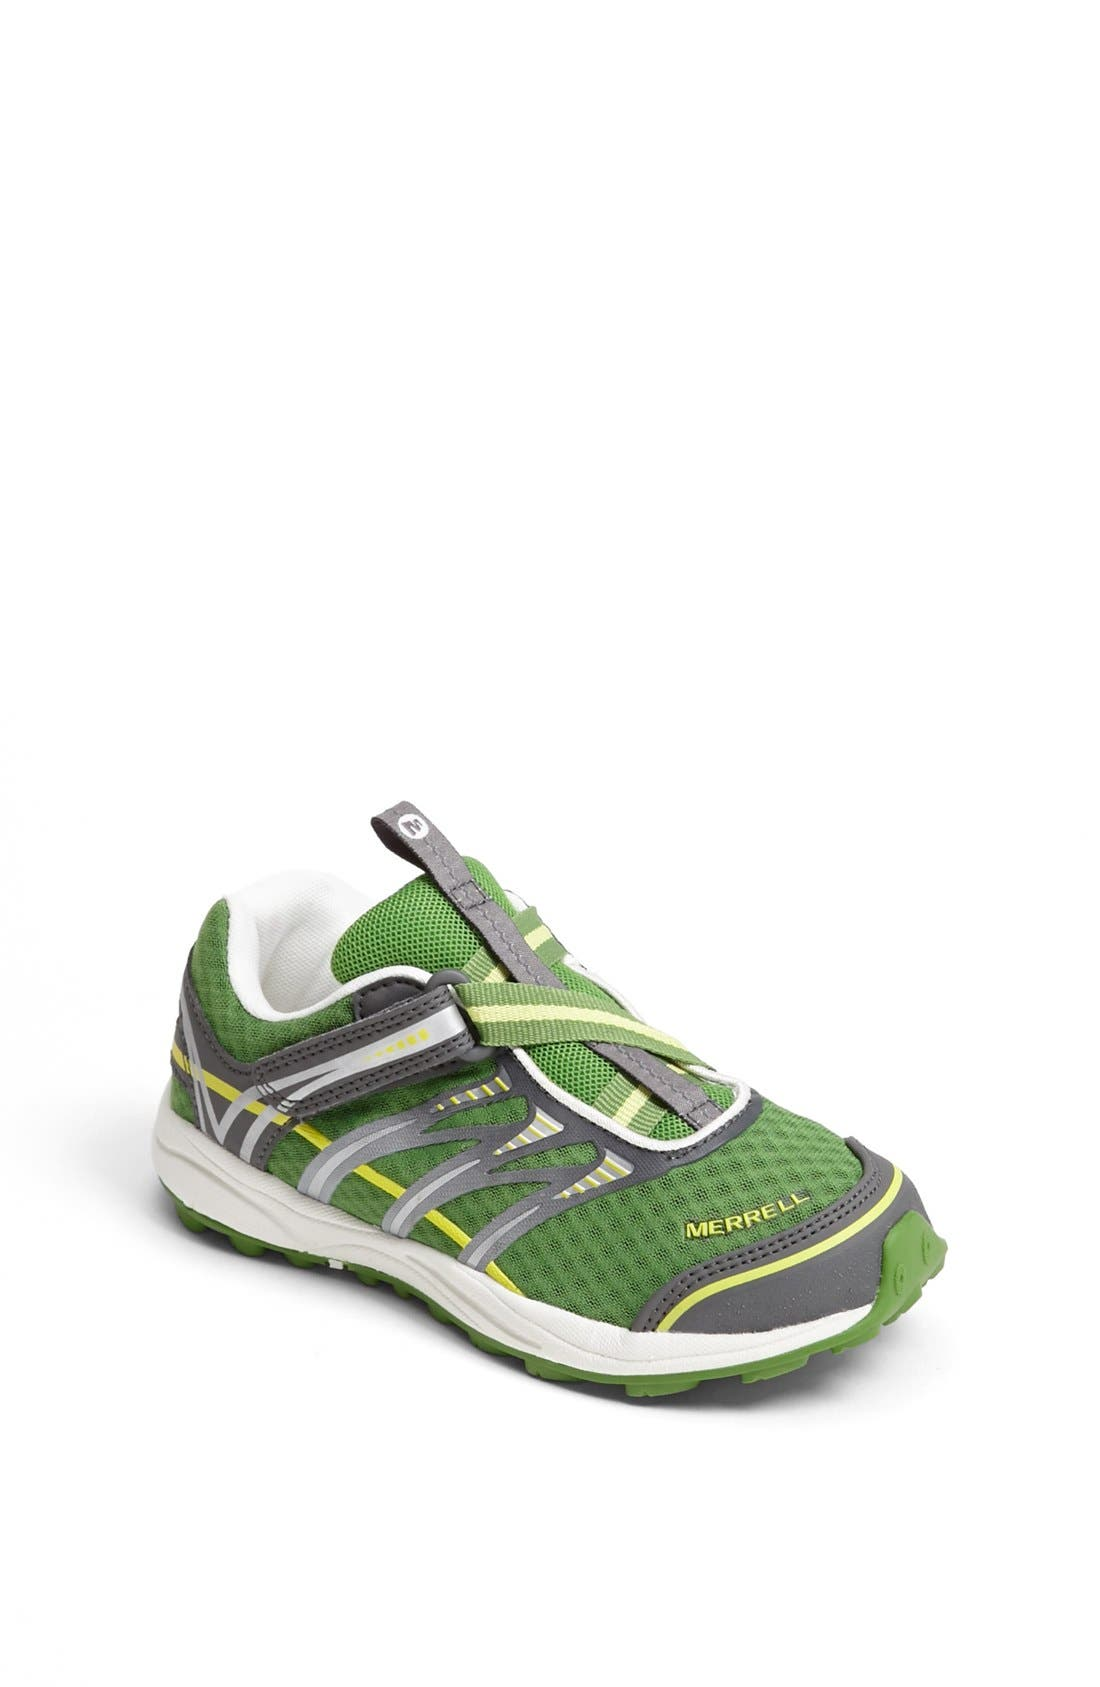 Main Image - Merrell 'Mix Master Jam Z-Rap™' Sneaker (Toddler, Little Kid & Big Kid)